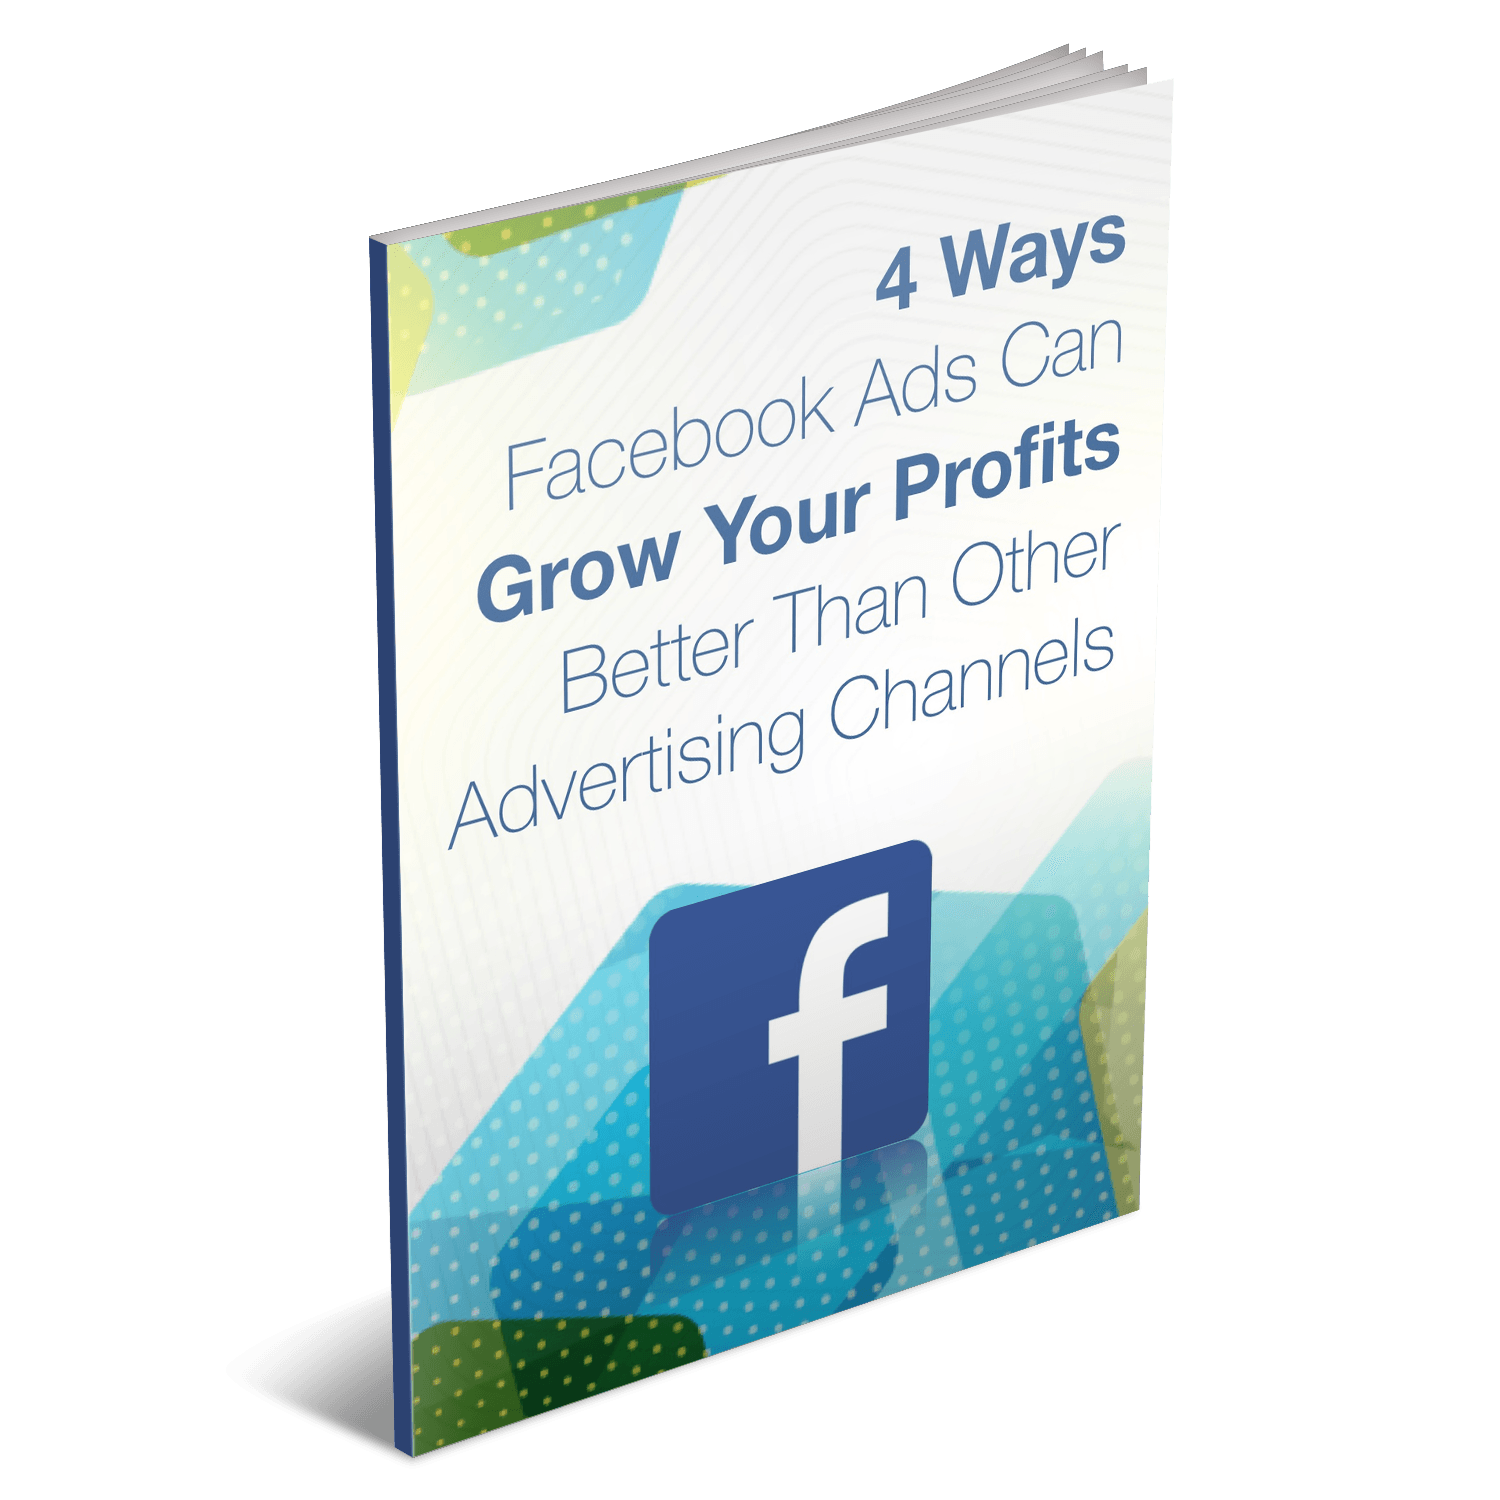 Free Report: Four ways Facebook ads can grow your profits better than other advertising channels